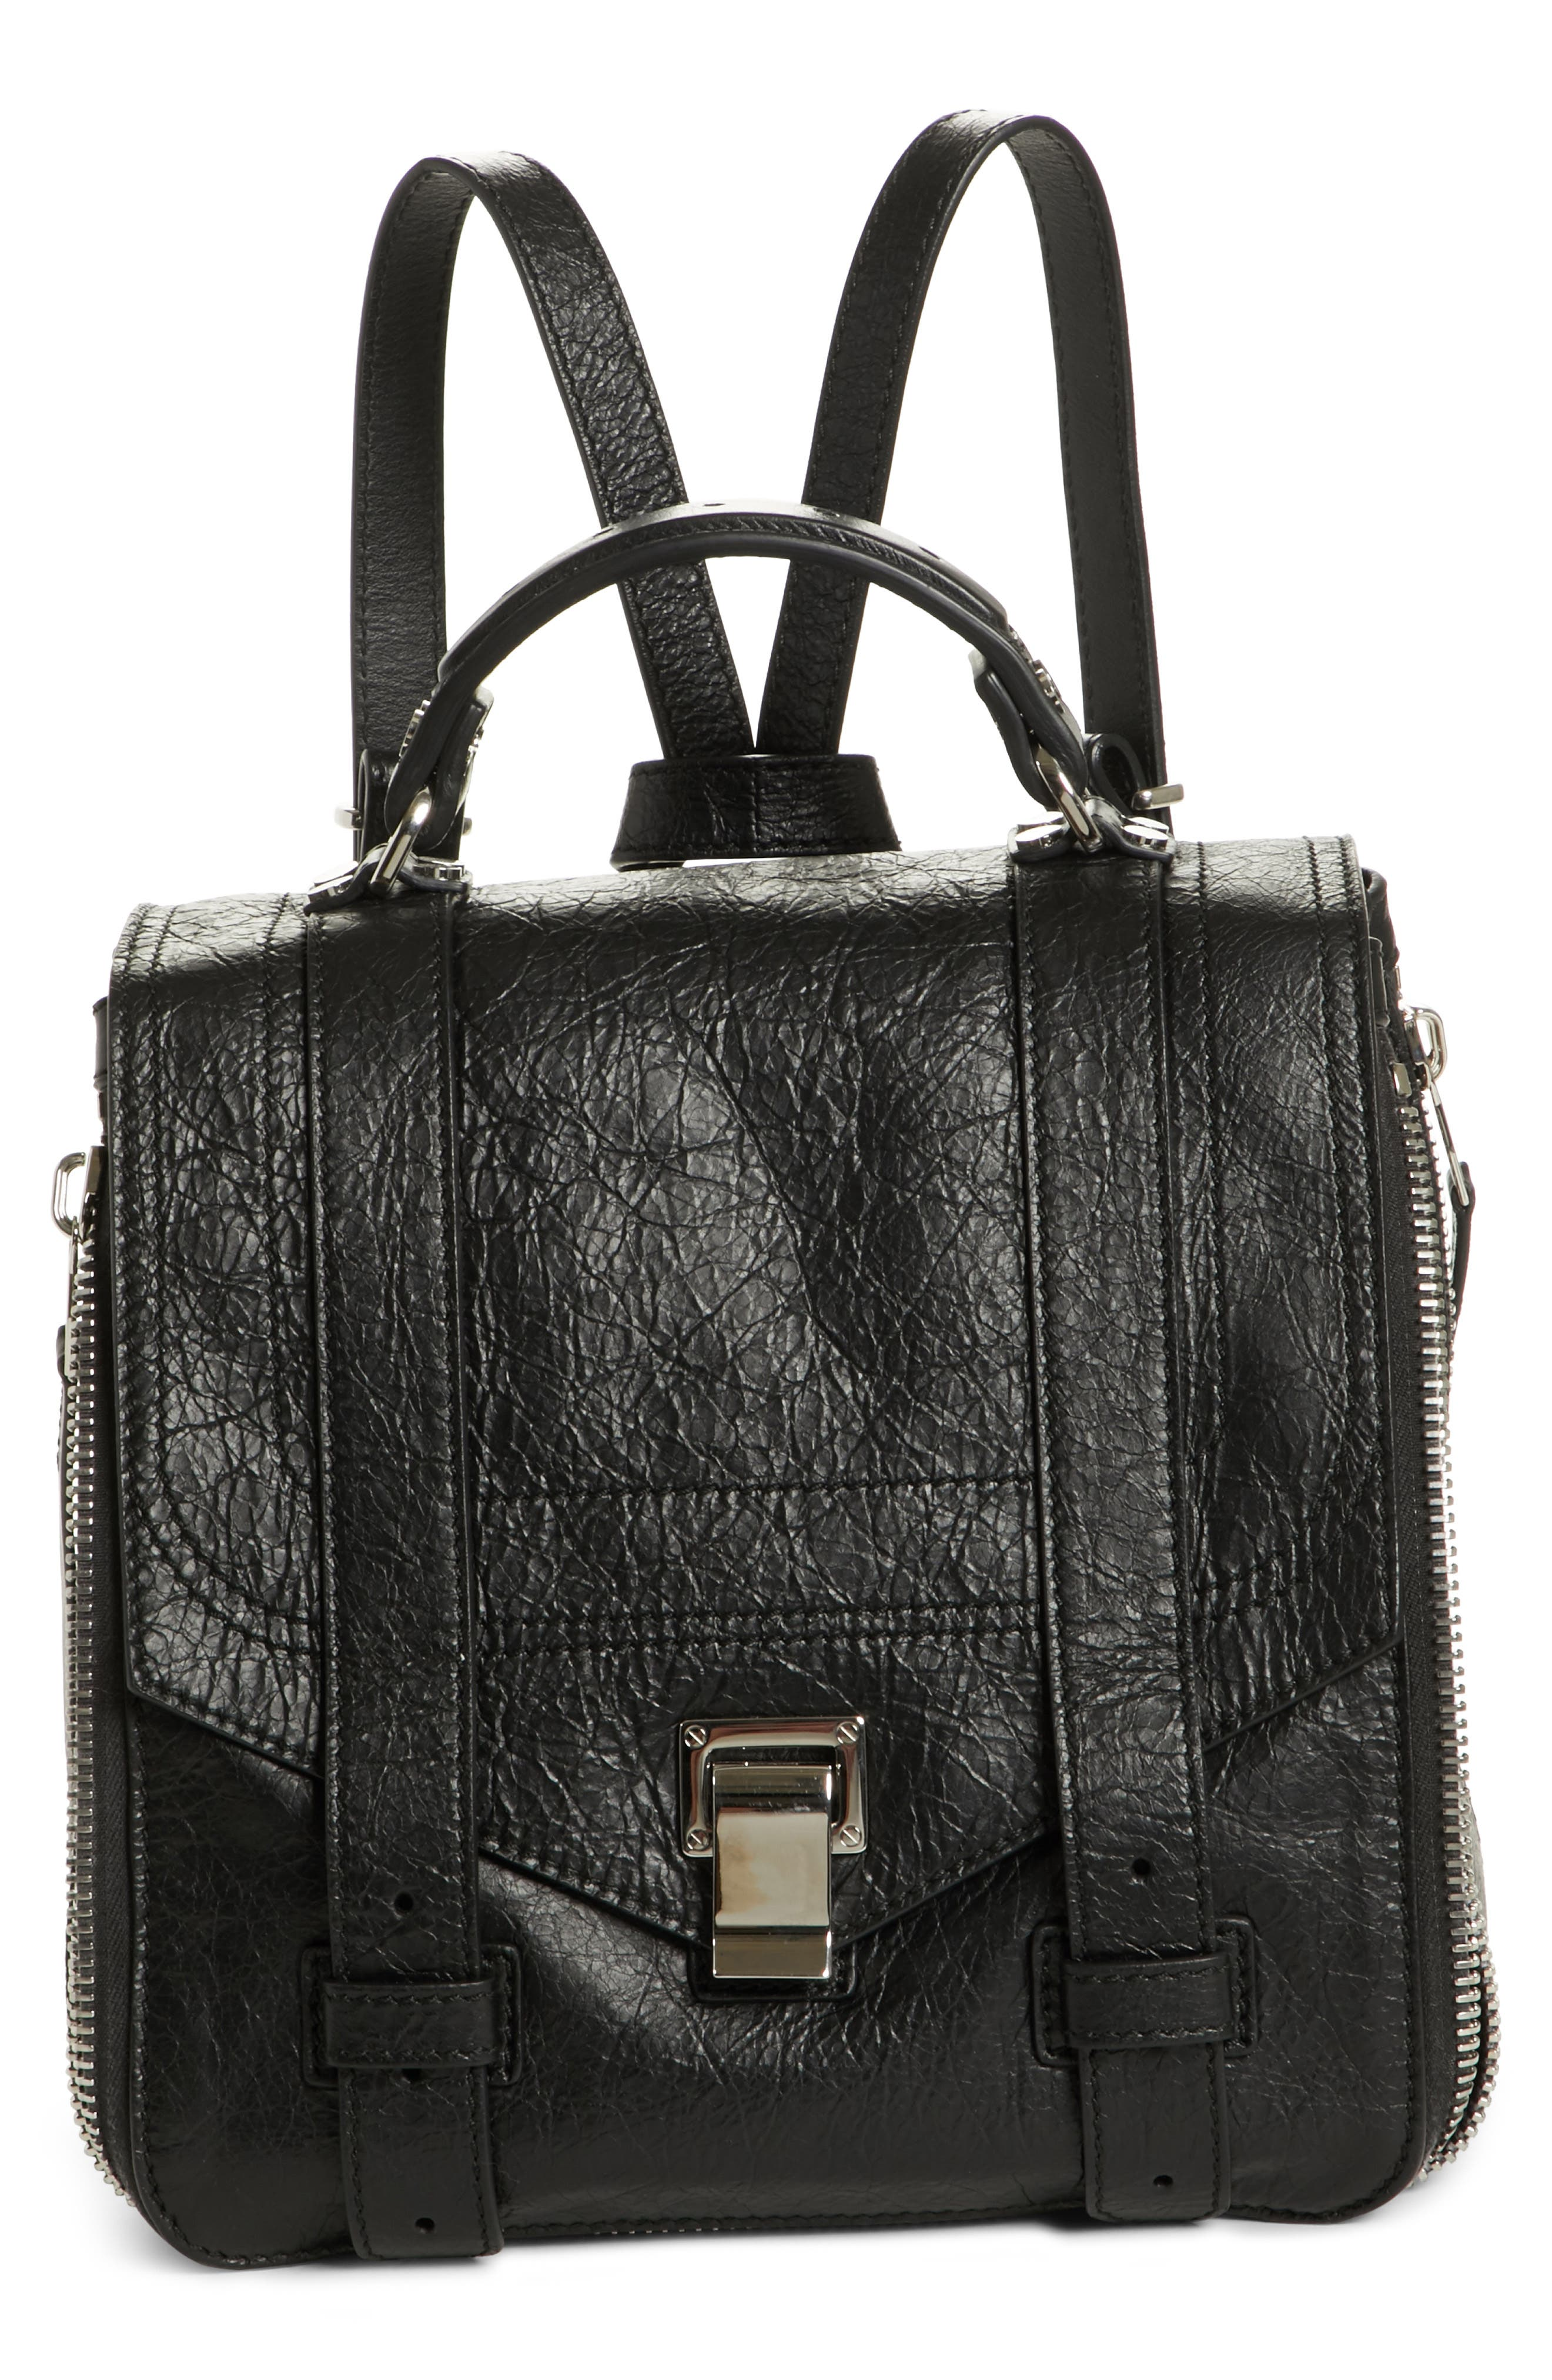 Ps1 Leather Convertible Backpack by Proenza Schouler